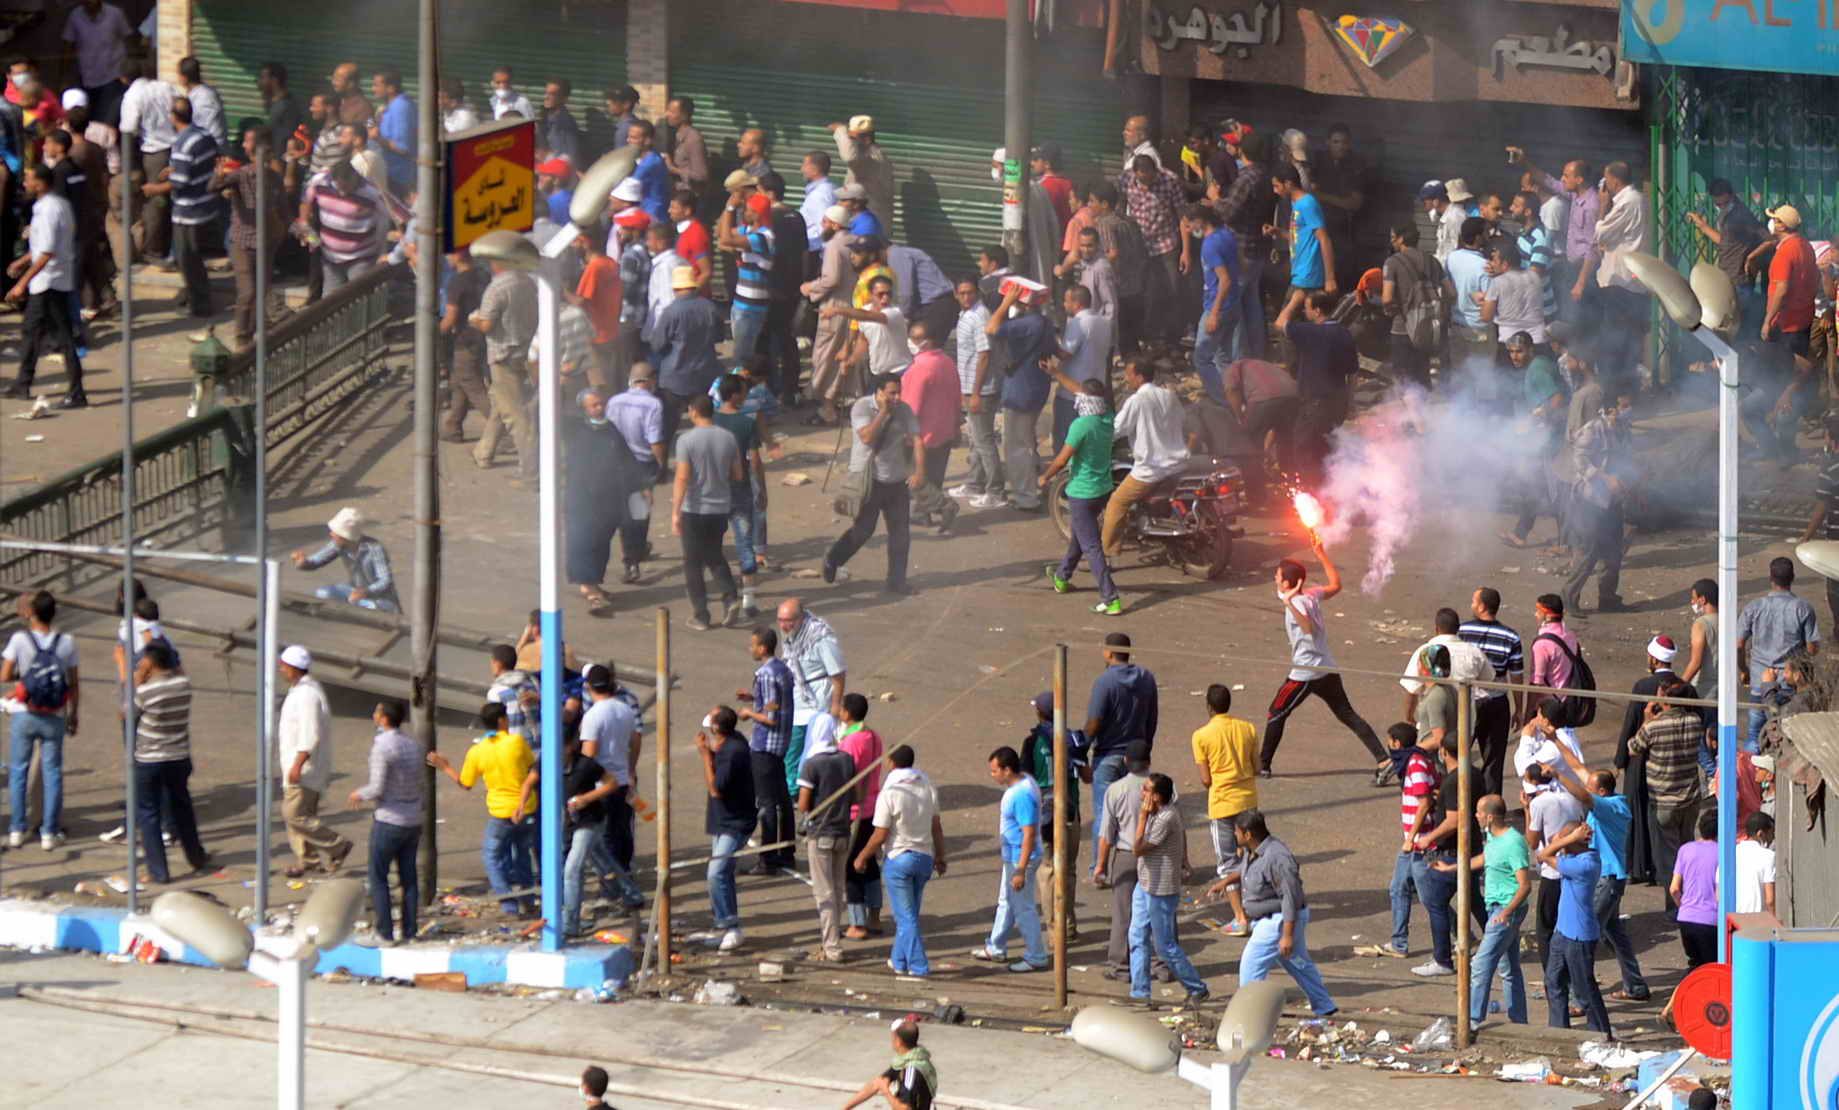 Clashes on Ramses Street on Friday. Ahmed Al-Malky